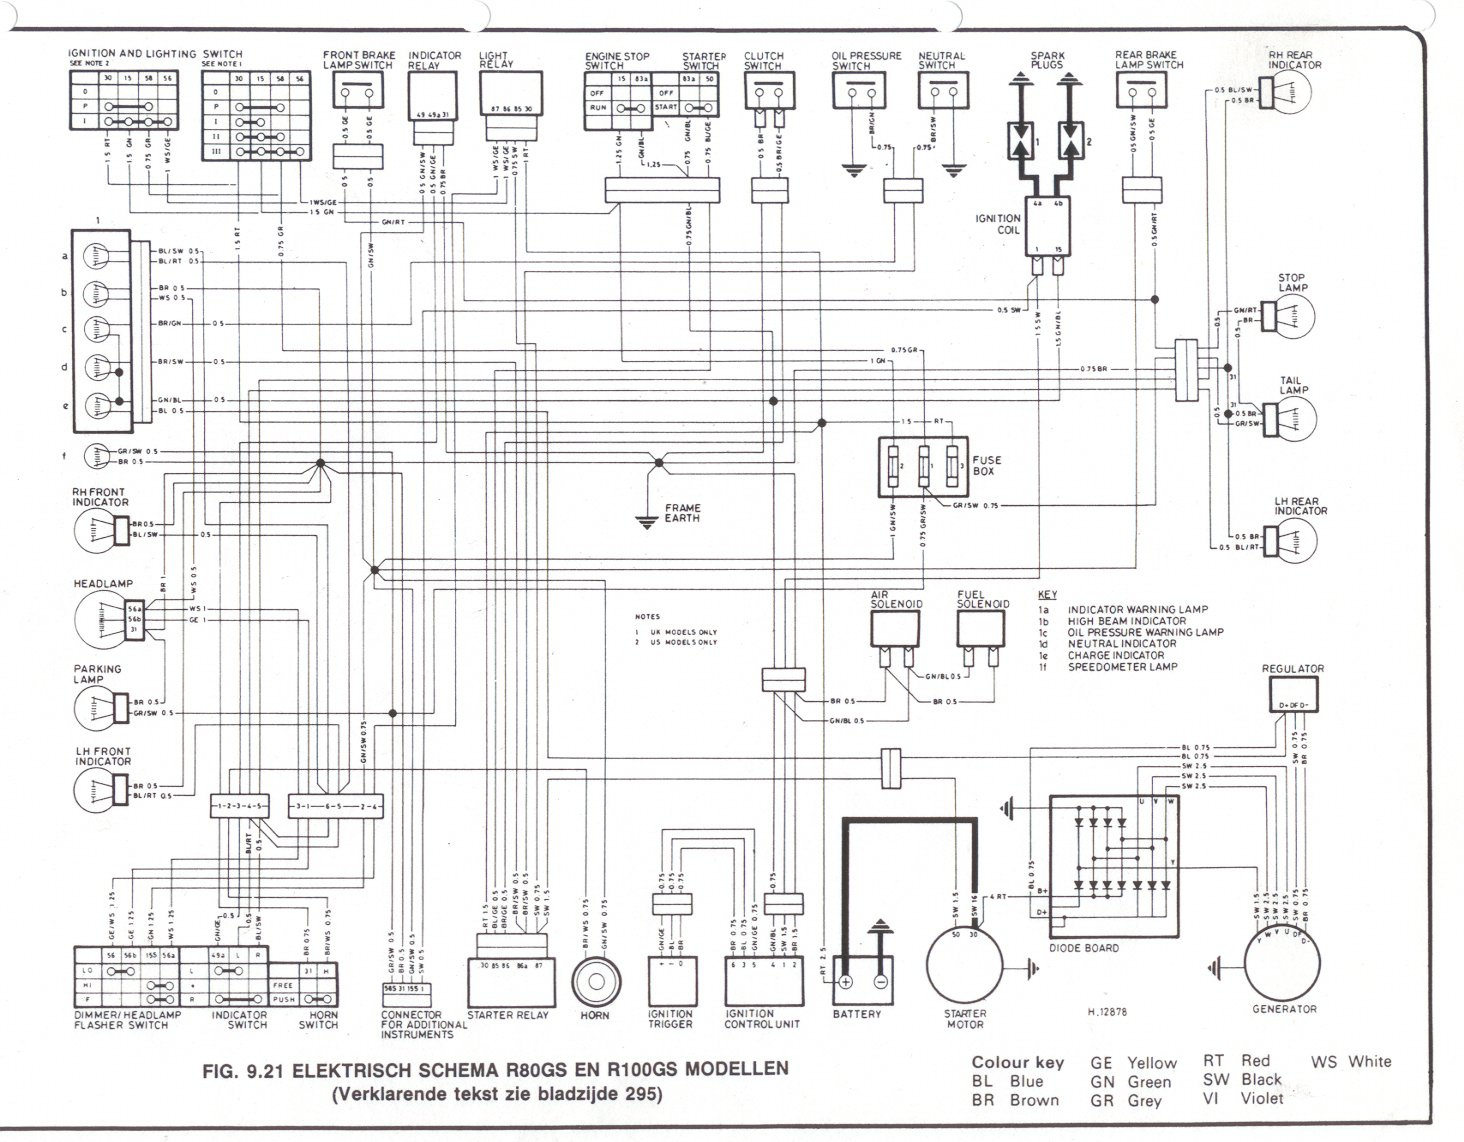 R80 100GS Schematic bmw r100 info thiel org za bmw r100rs gauge wiring diagram at couponss.co